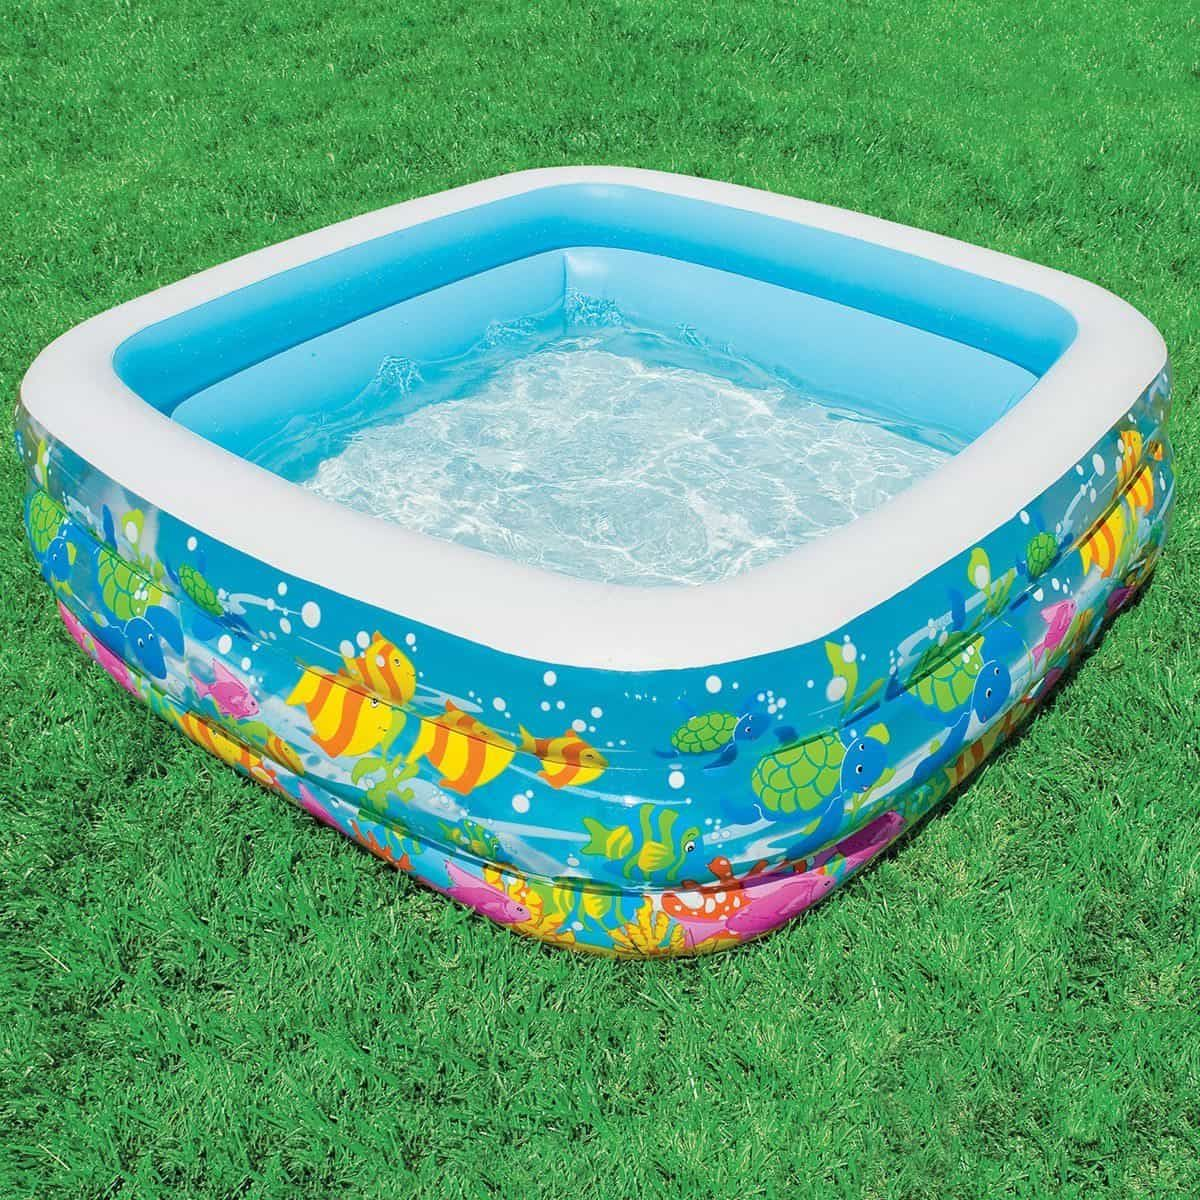 Easy Too Install Inflatable Swimming Pools Inflatable Lounge Pool Kids Aquarium Kiddie Pool